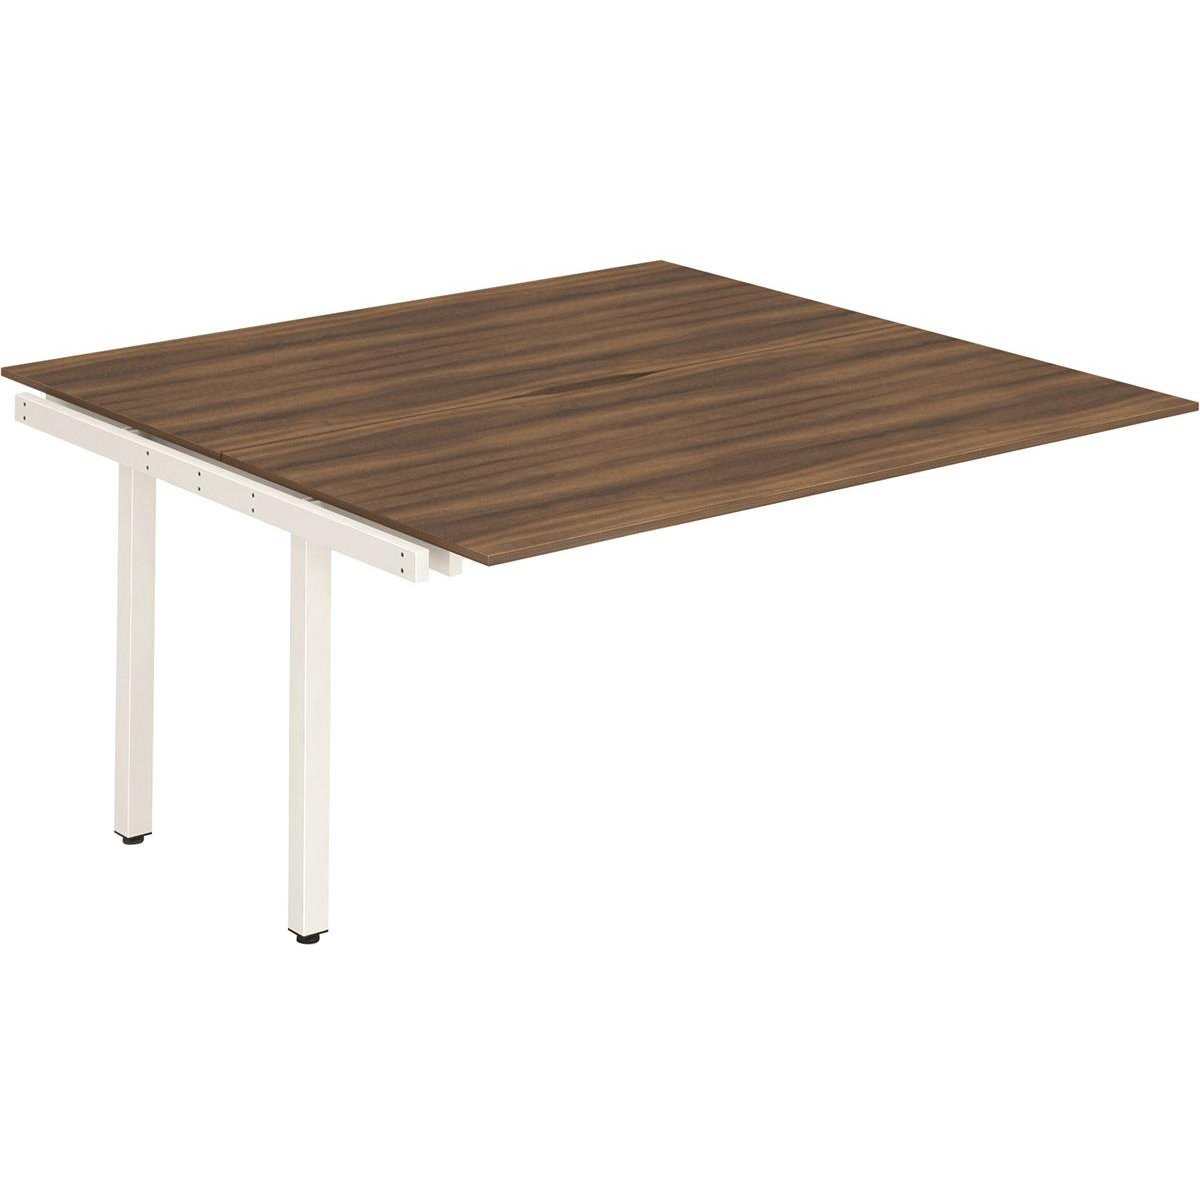 Trexus Bench Desk Double Extension Back to Back Configuration White Leg 1400x1600mm Walnut Ref BE194